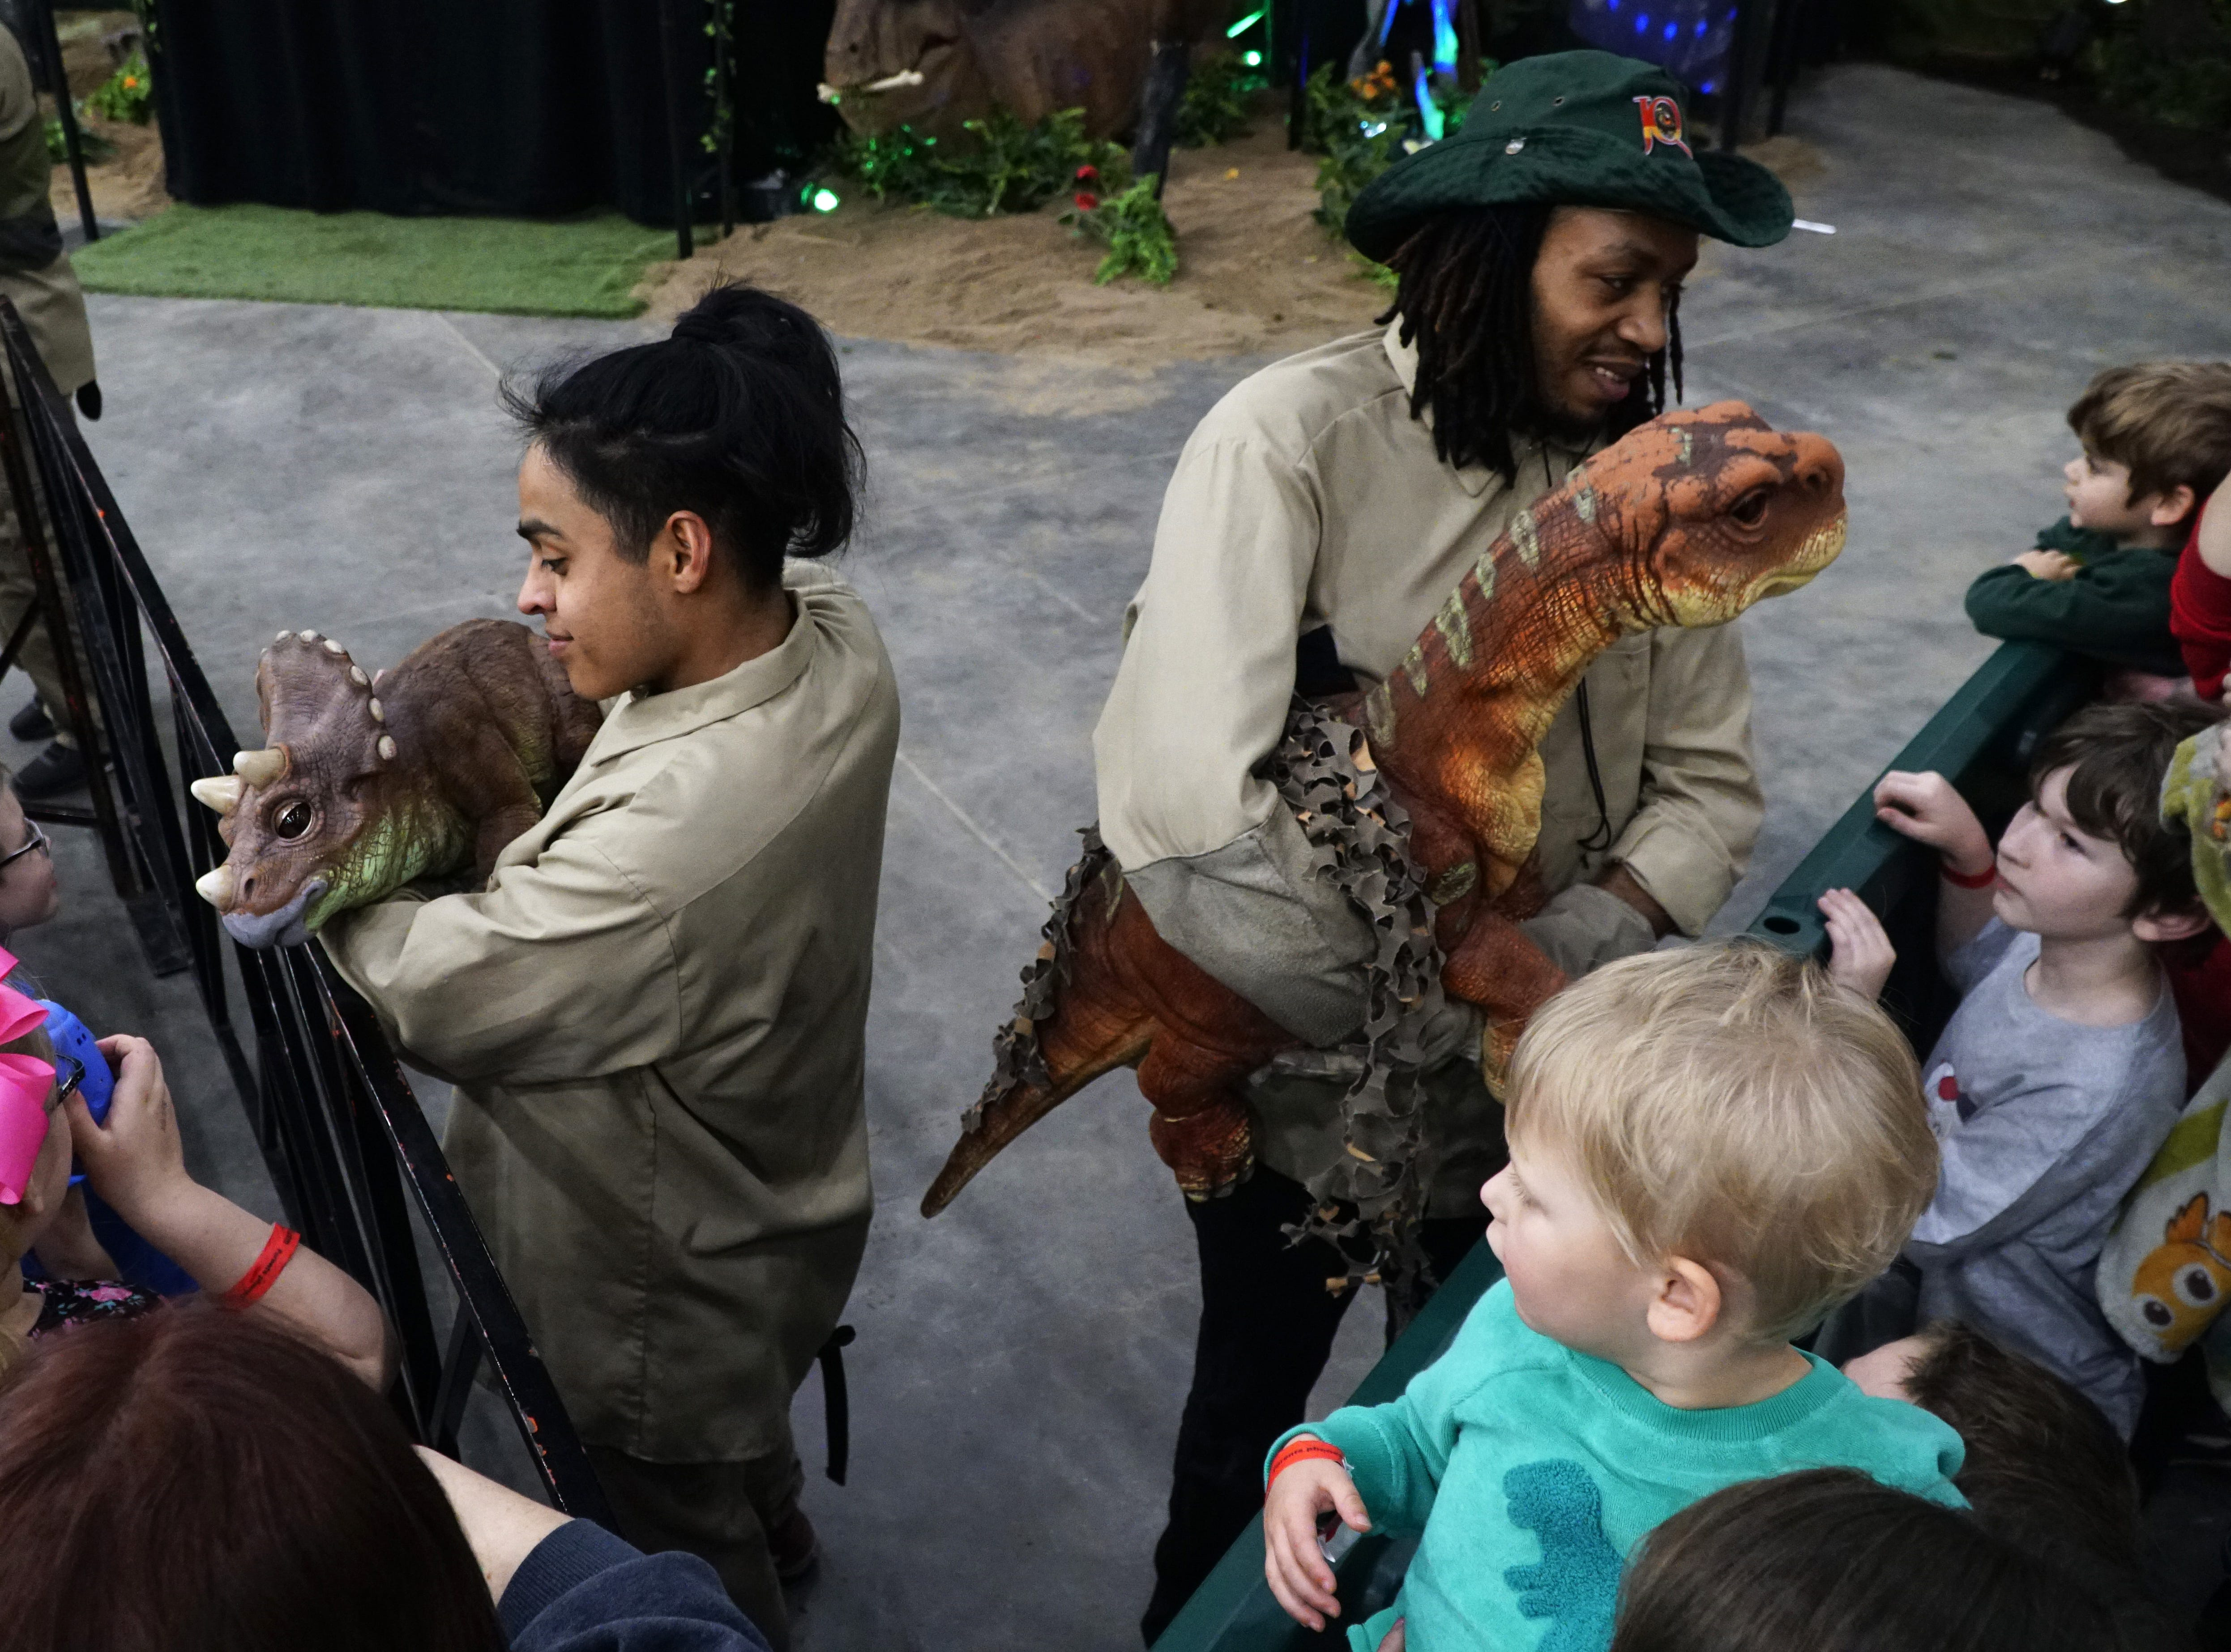 """""""Dinosaur caretakers"""" Ricky Rodriguez and Bobby Arnold use puppetry to make """"Trixi"""" the triceratops and """"Cammy"""" the camarasaurus come alive at Jurassic Quest, March 9, 2019."""